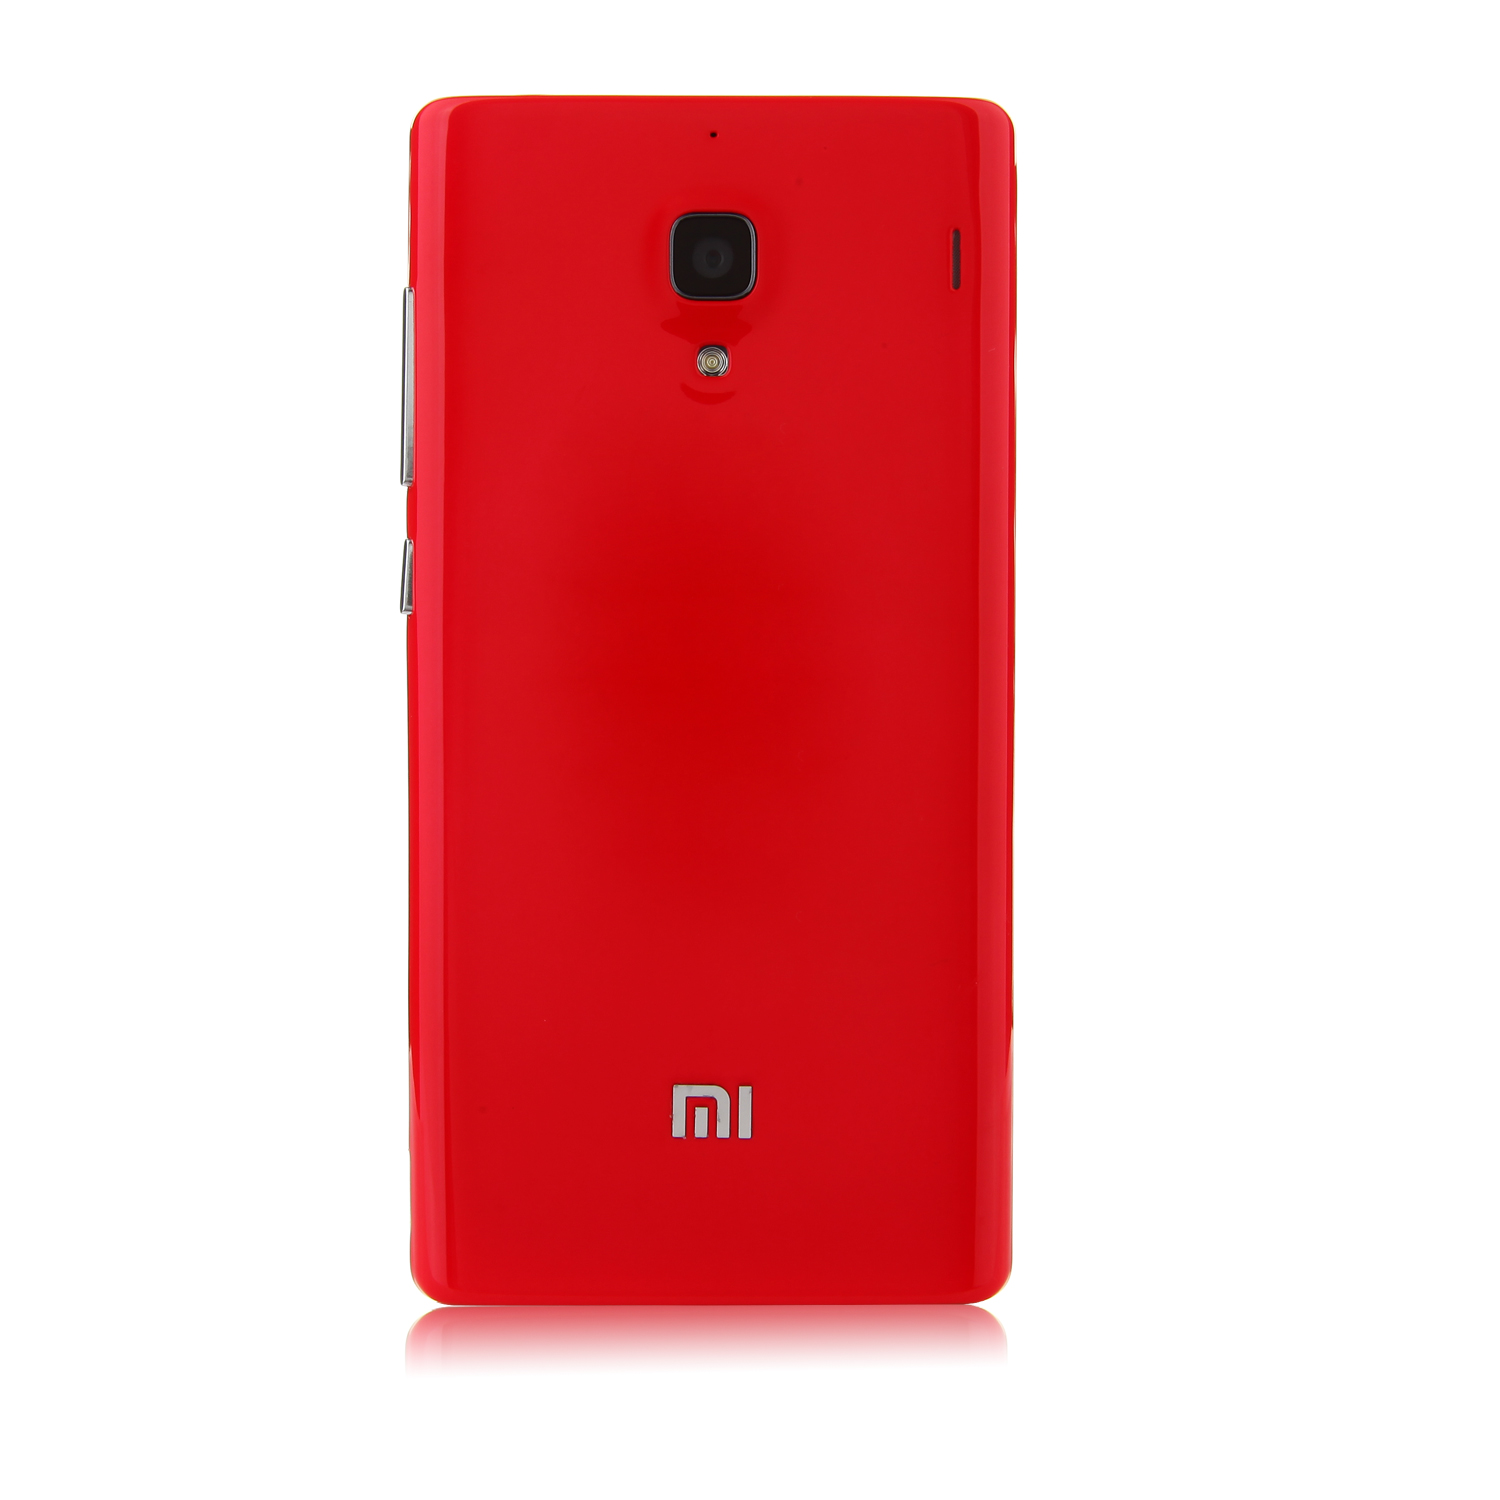 Replacement Battery Cover Back Case for XIAOMI Redmi 1S Smartphone Red